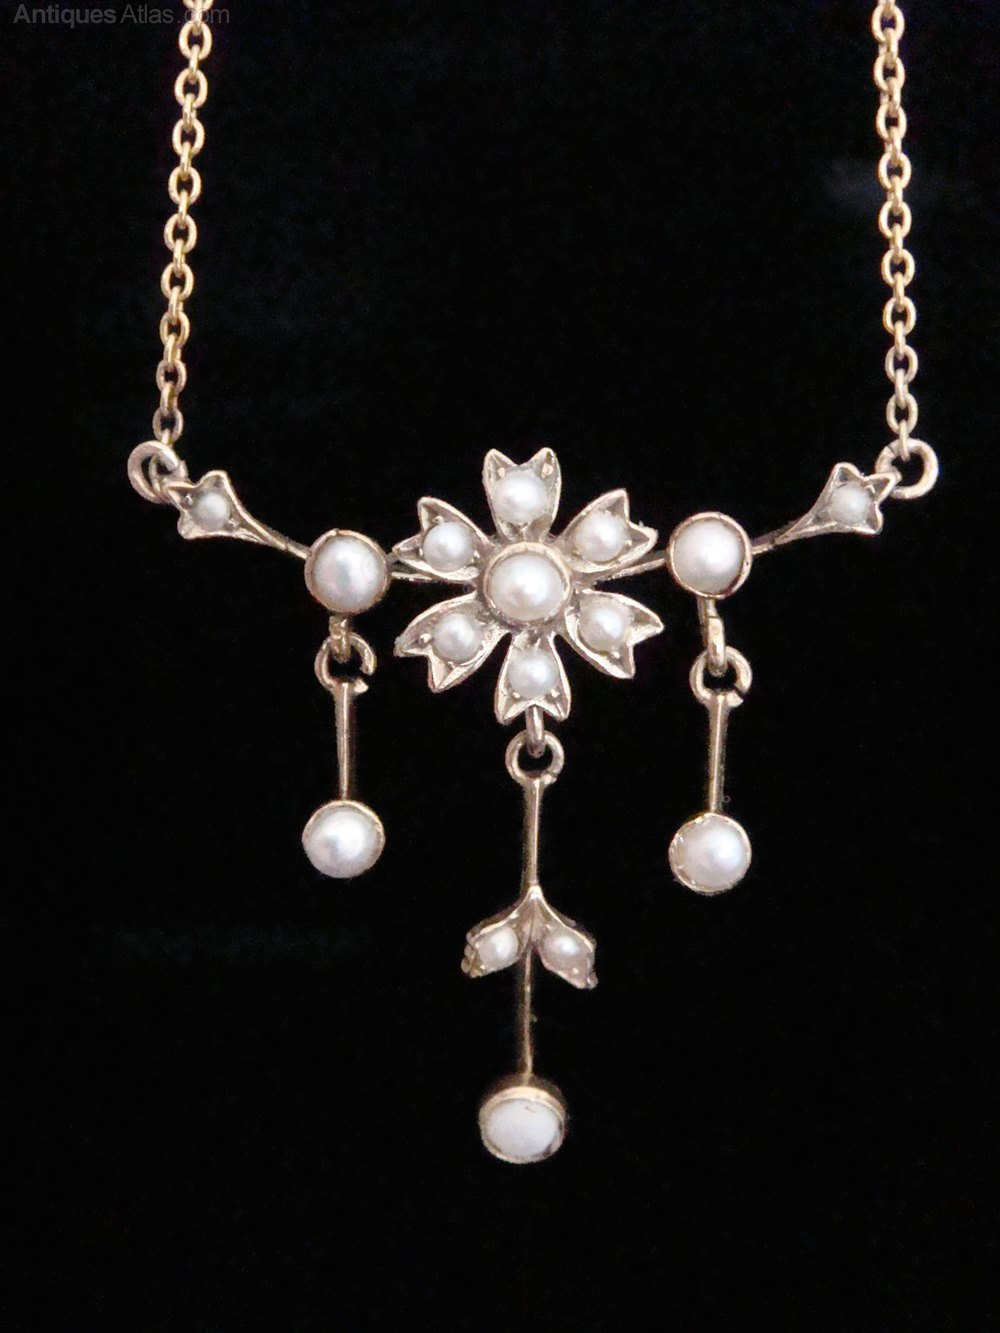 antiques atlas edwardian 9ct seed pearl necklace